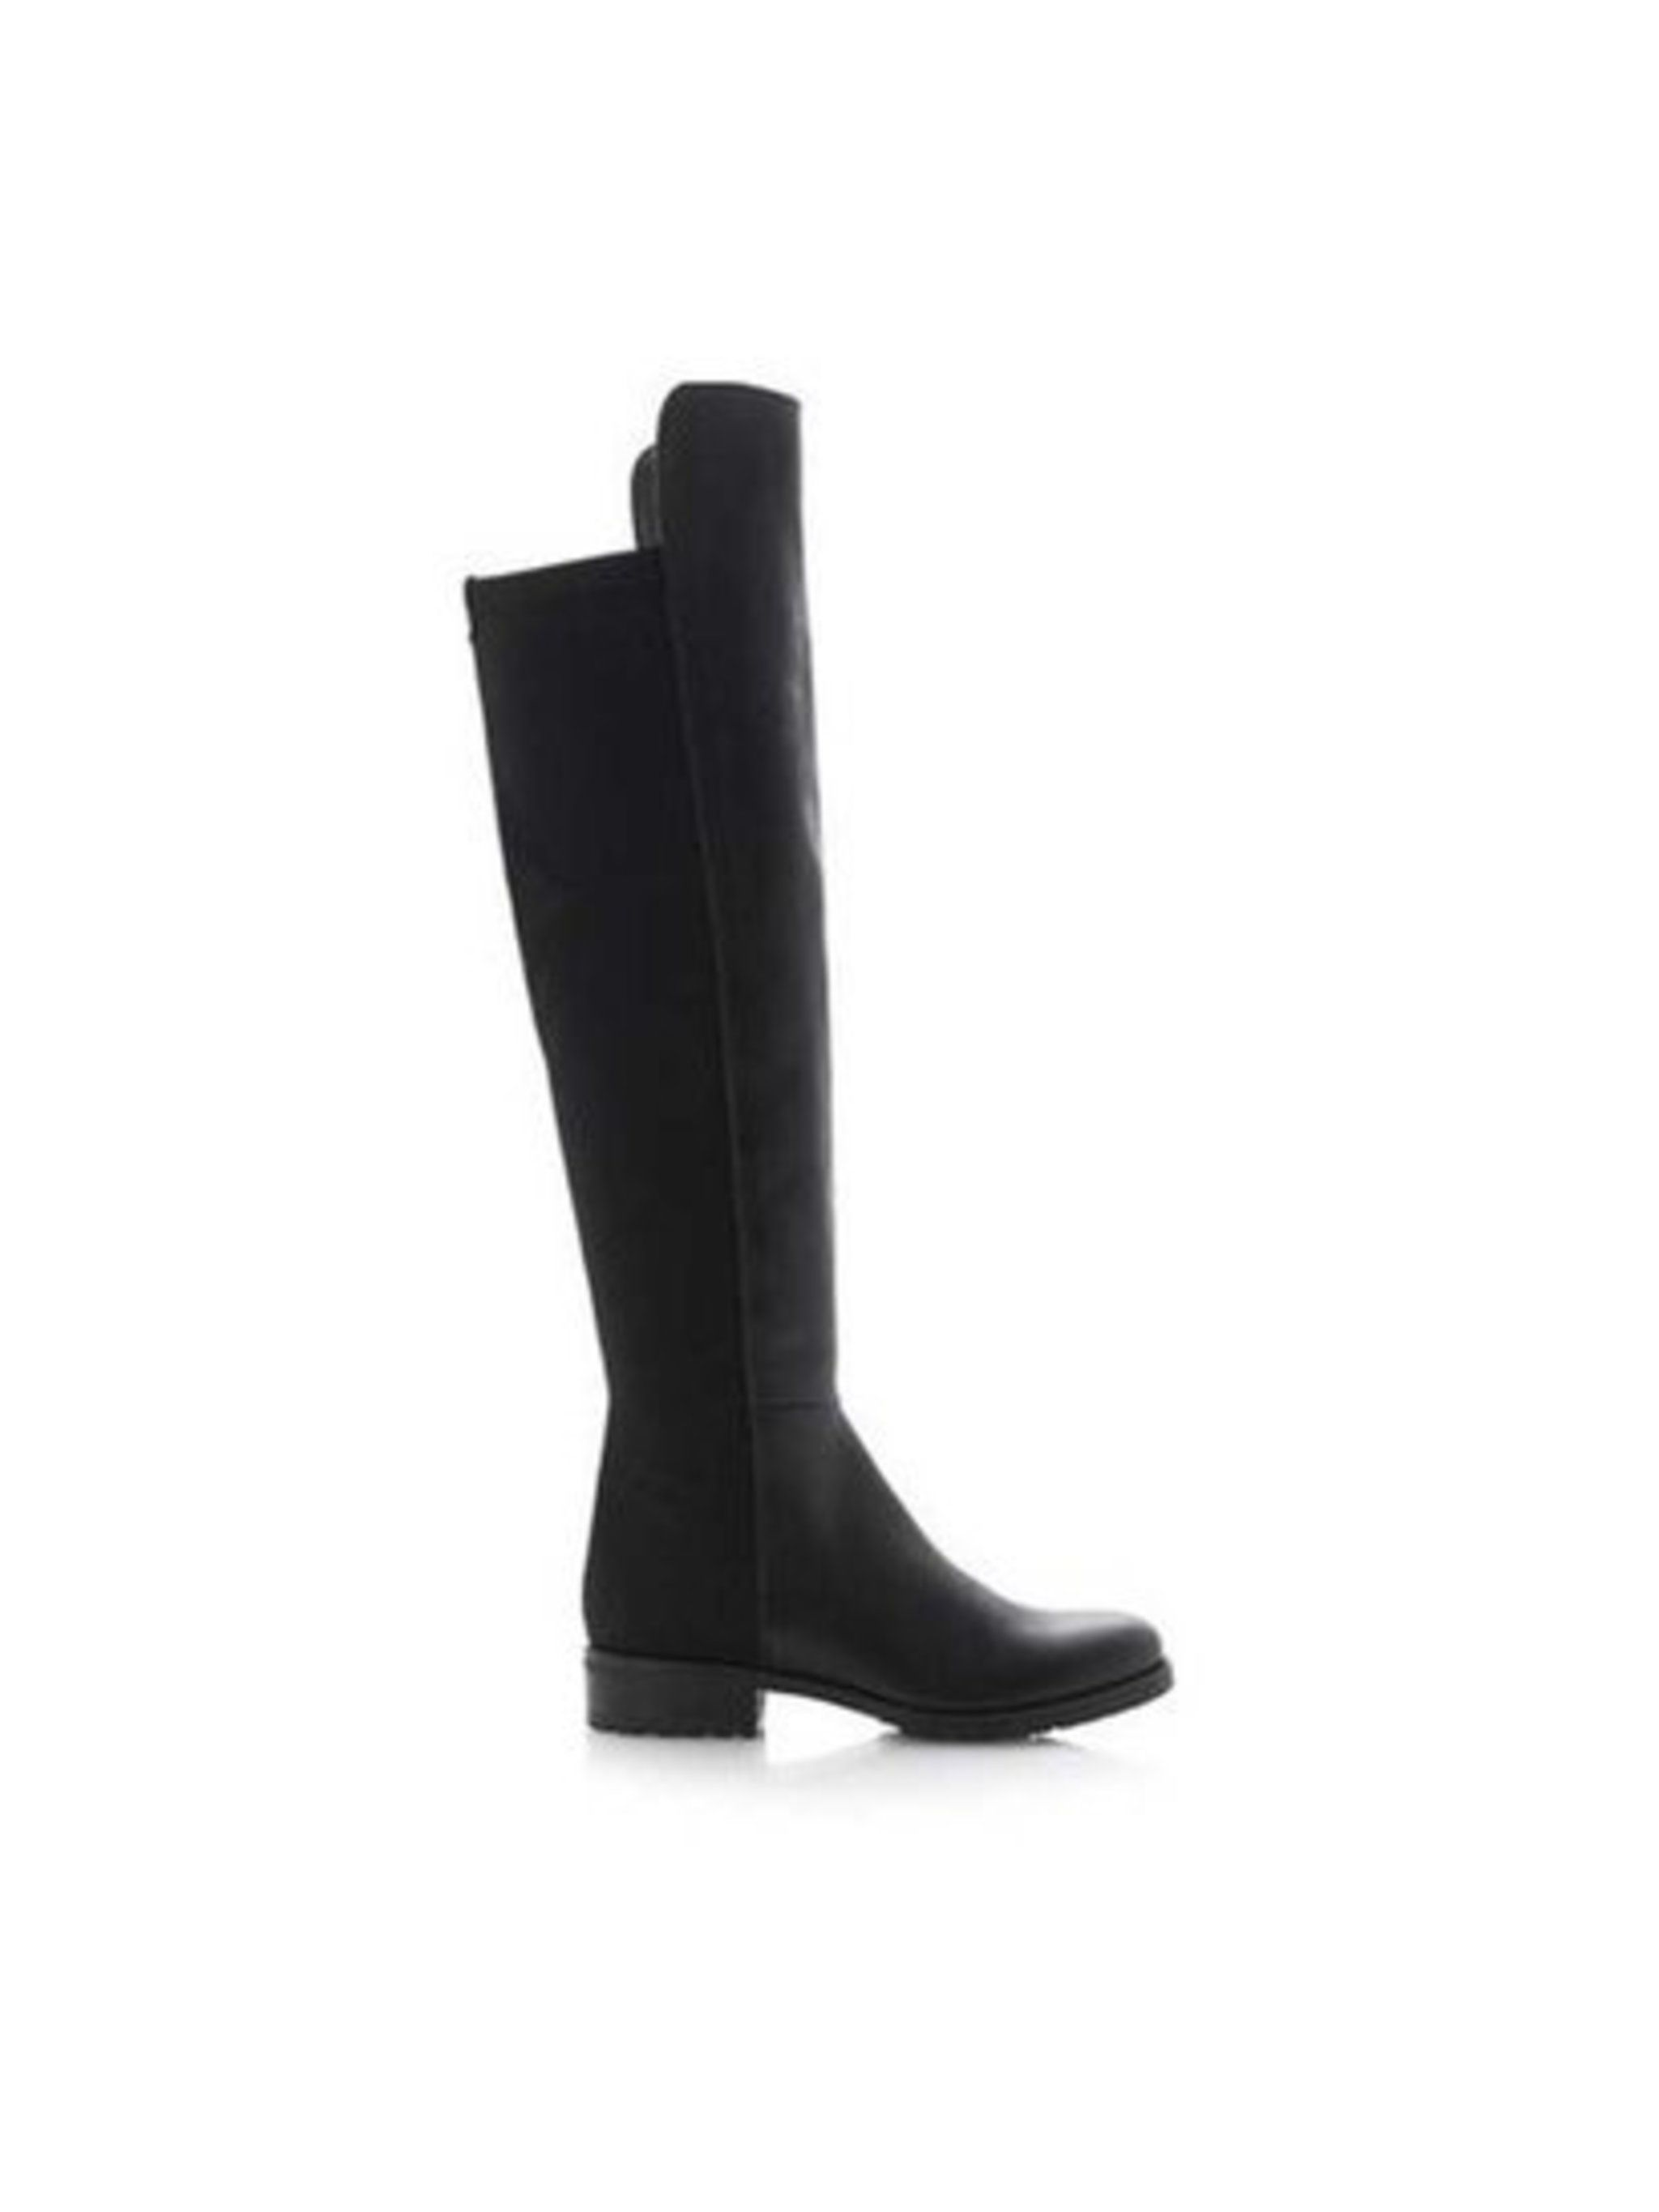 Market & Retail Editor Harriet Stewart pairs her over-the-knee boots with an oversized shirt dress.Dune boots, £149